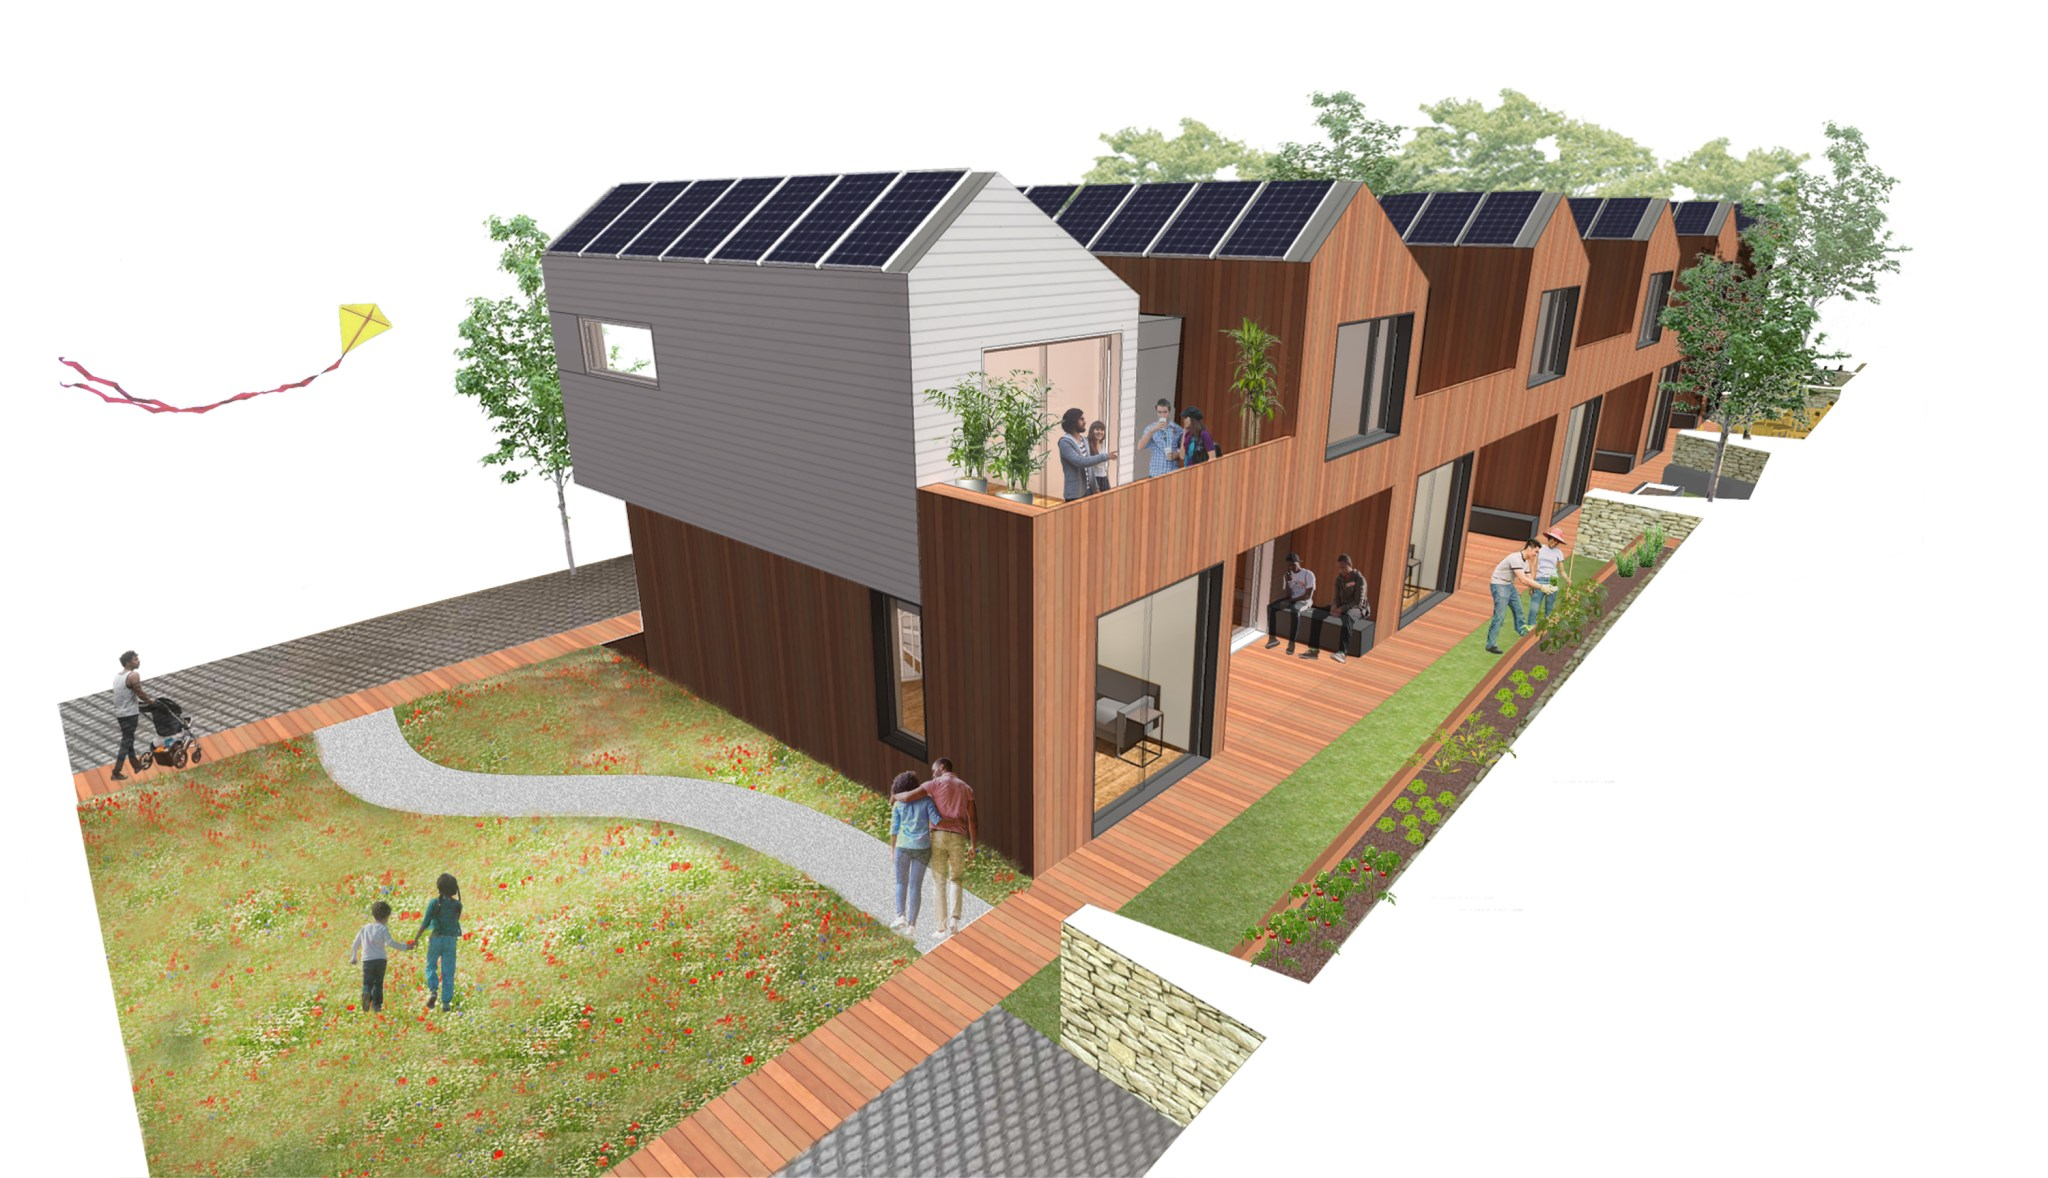 multifamily compact townhouse design rendering